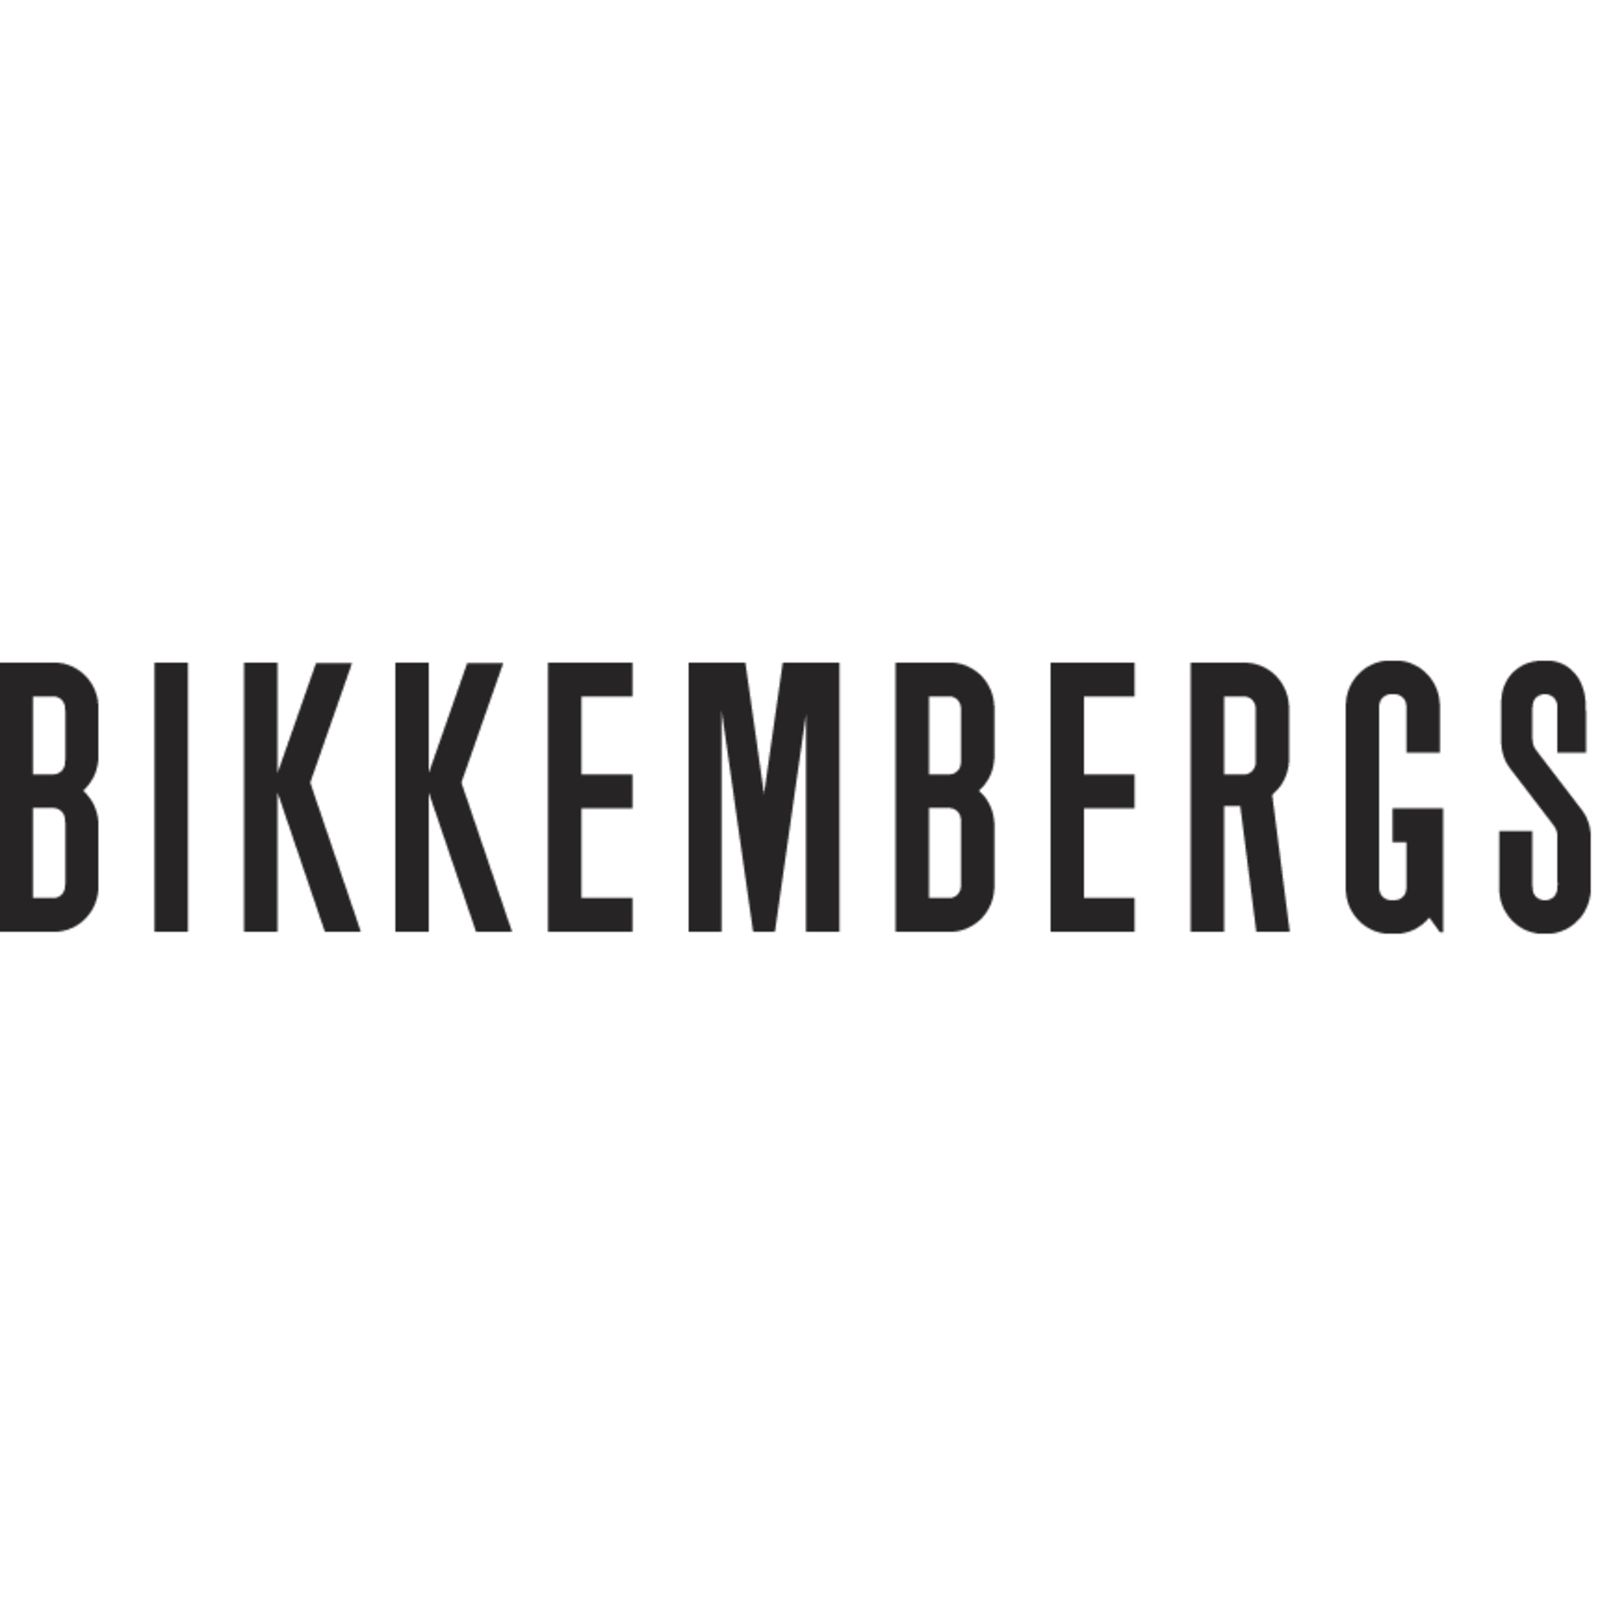 BIKKEMBERGS JUNIOR (Image 1)